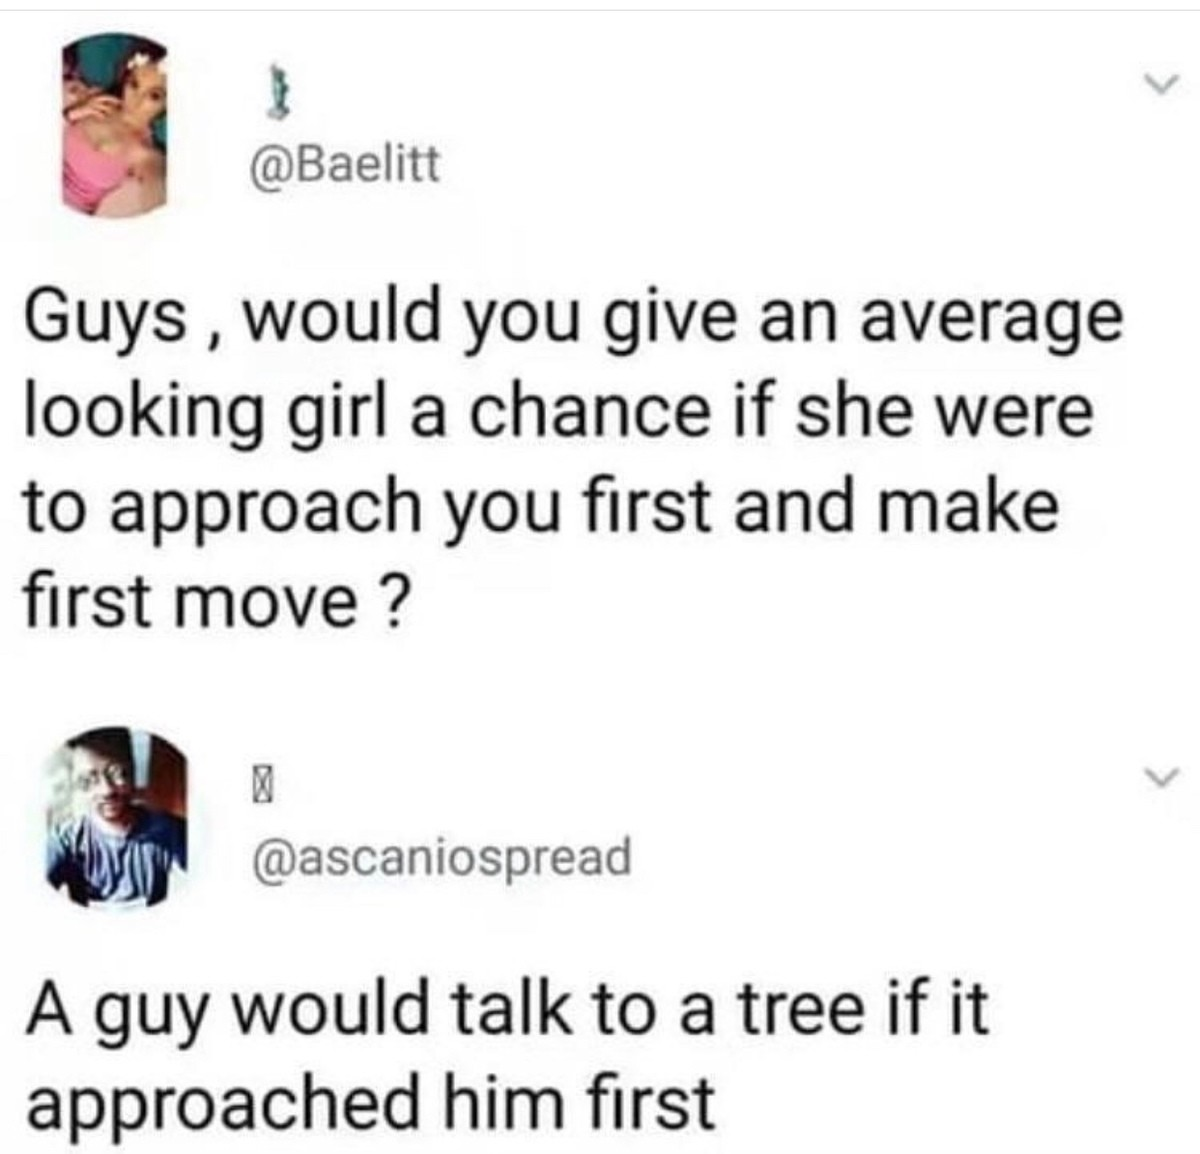 Would you give an average girl a chance?. .. I mean, how often do you get to talk to trees?